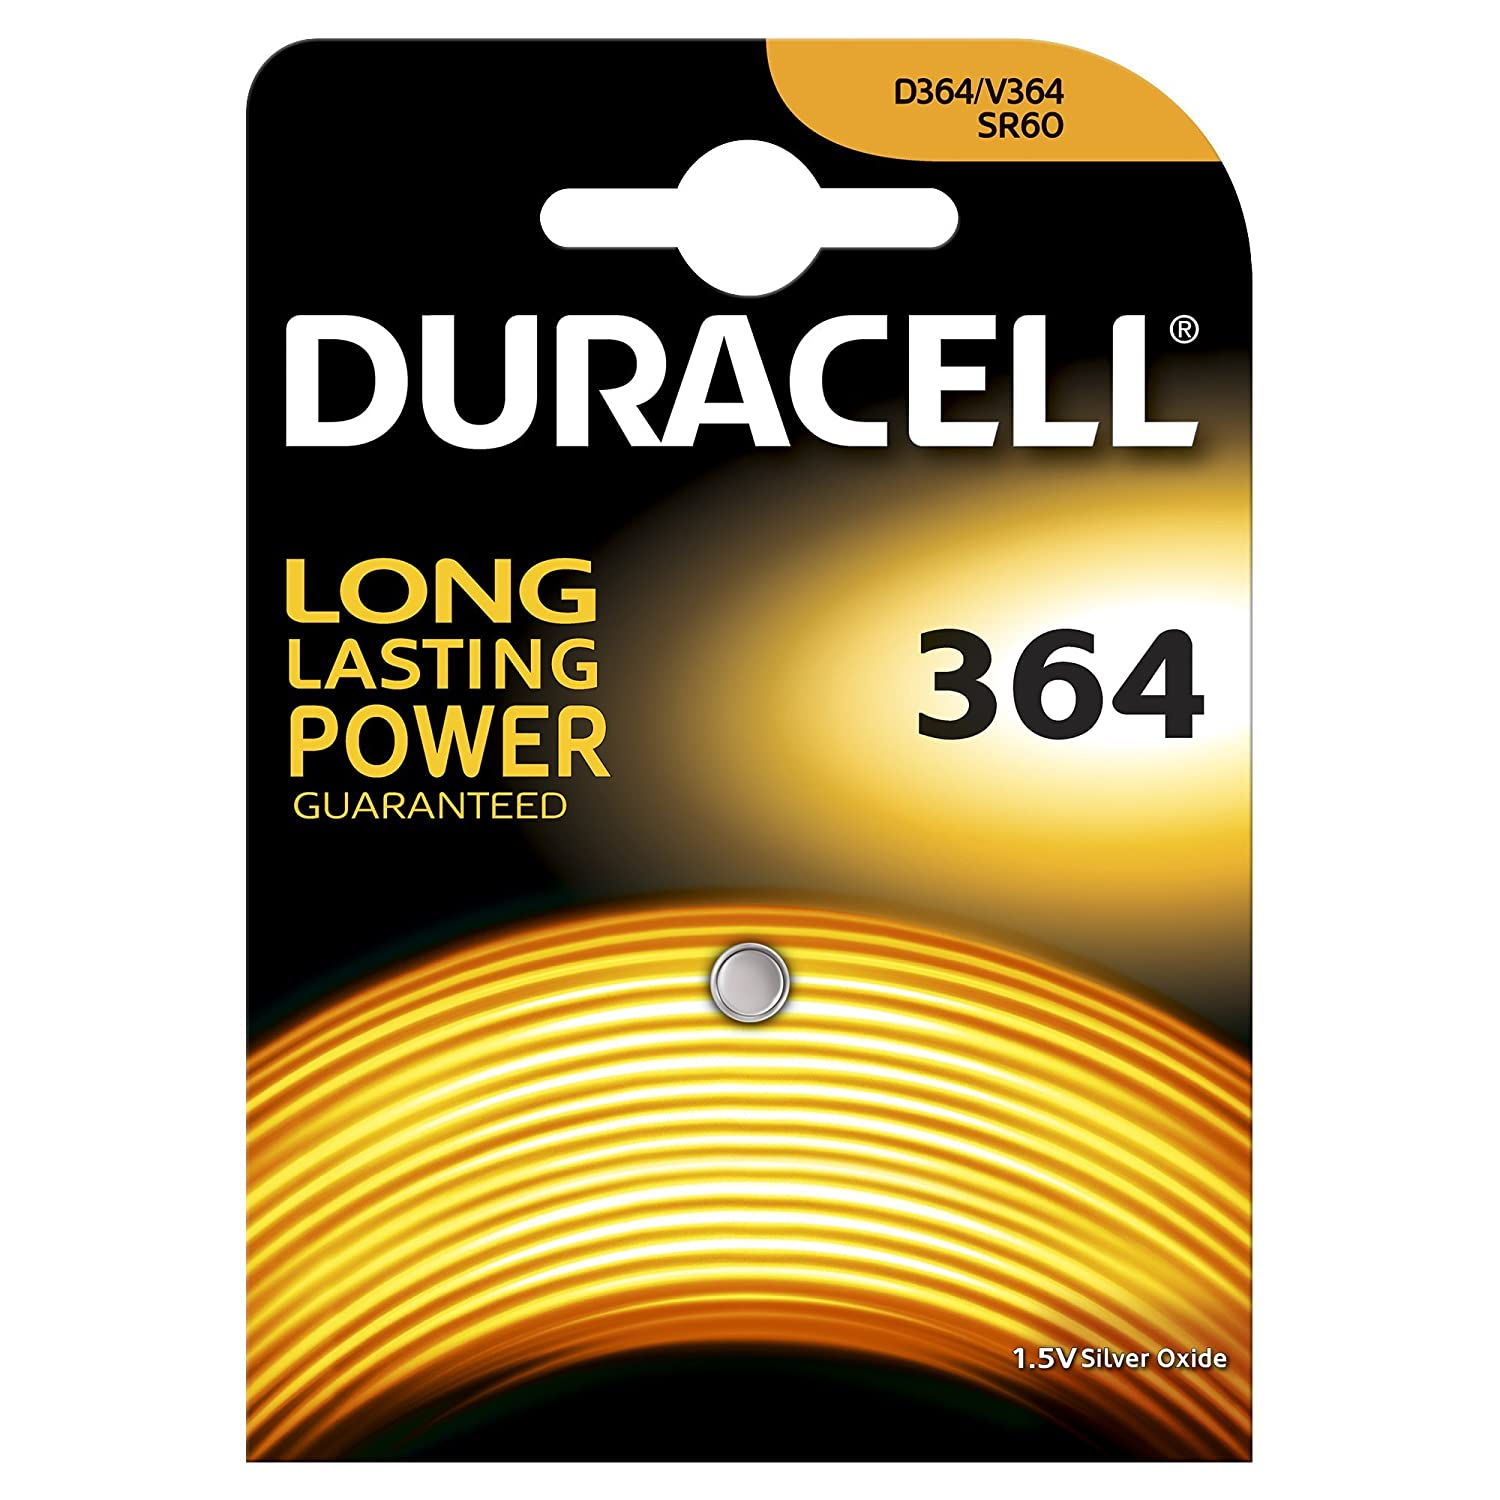 Duracell 364 Argento-Ossido 1.5V batteria non-ricaricabile DURACELL ITALY S.R.L. D364